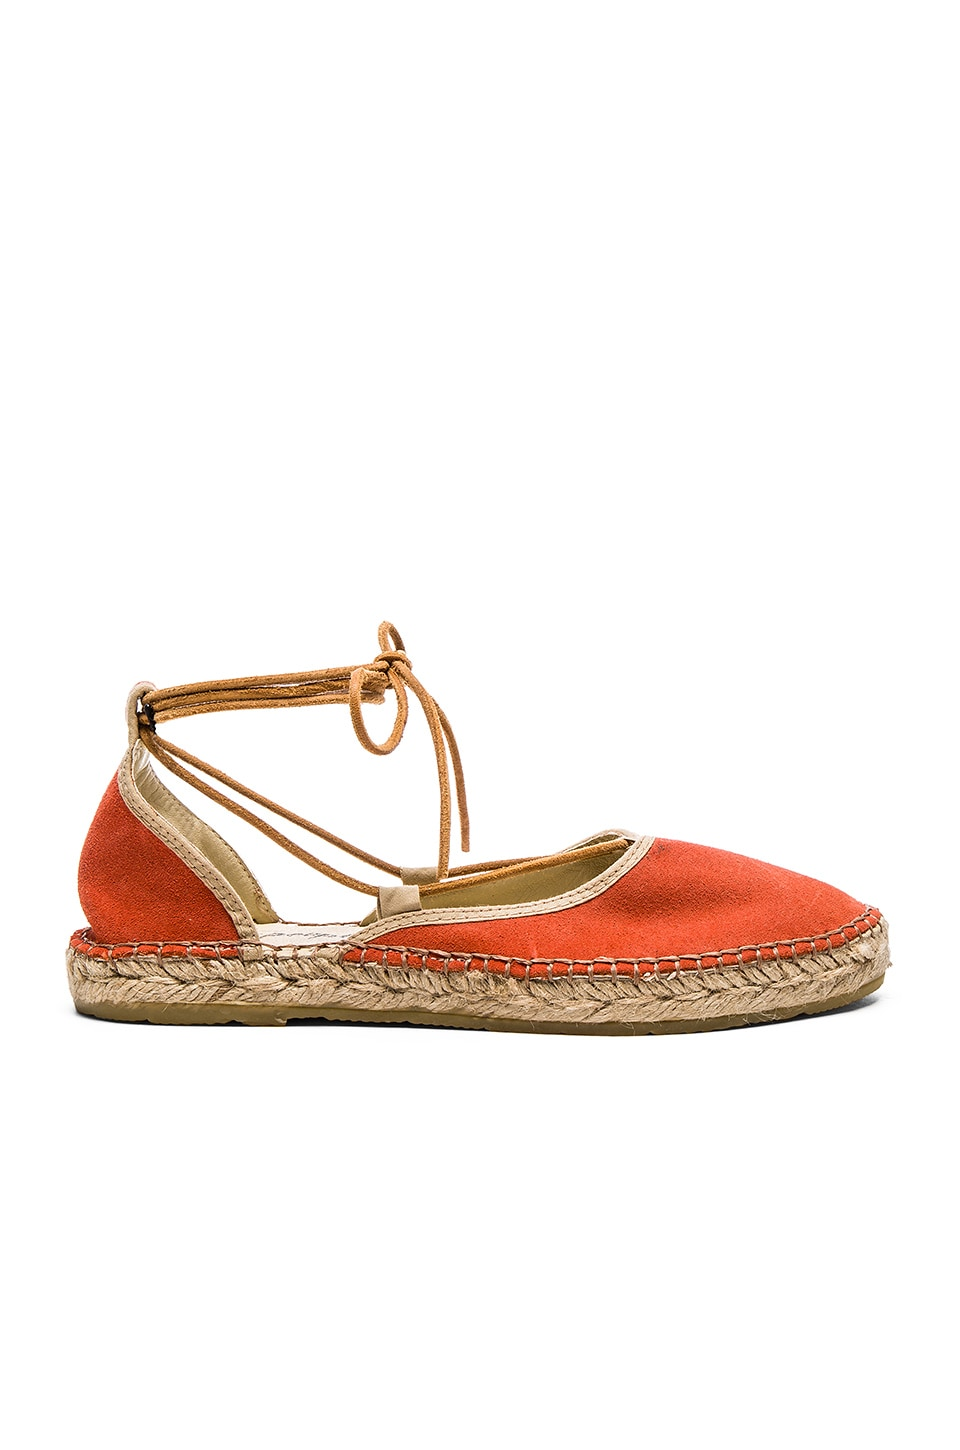 Free People Marina Lace Up Espadrille in Coral